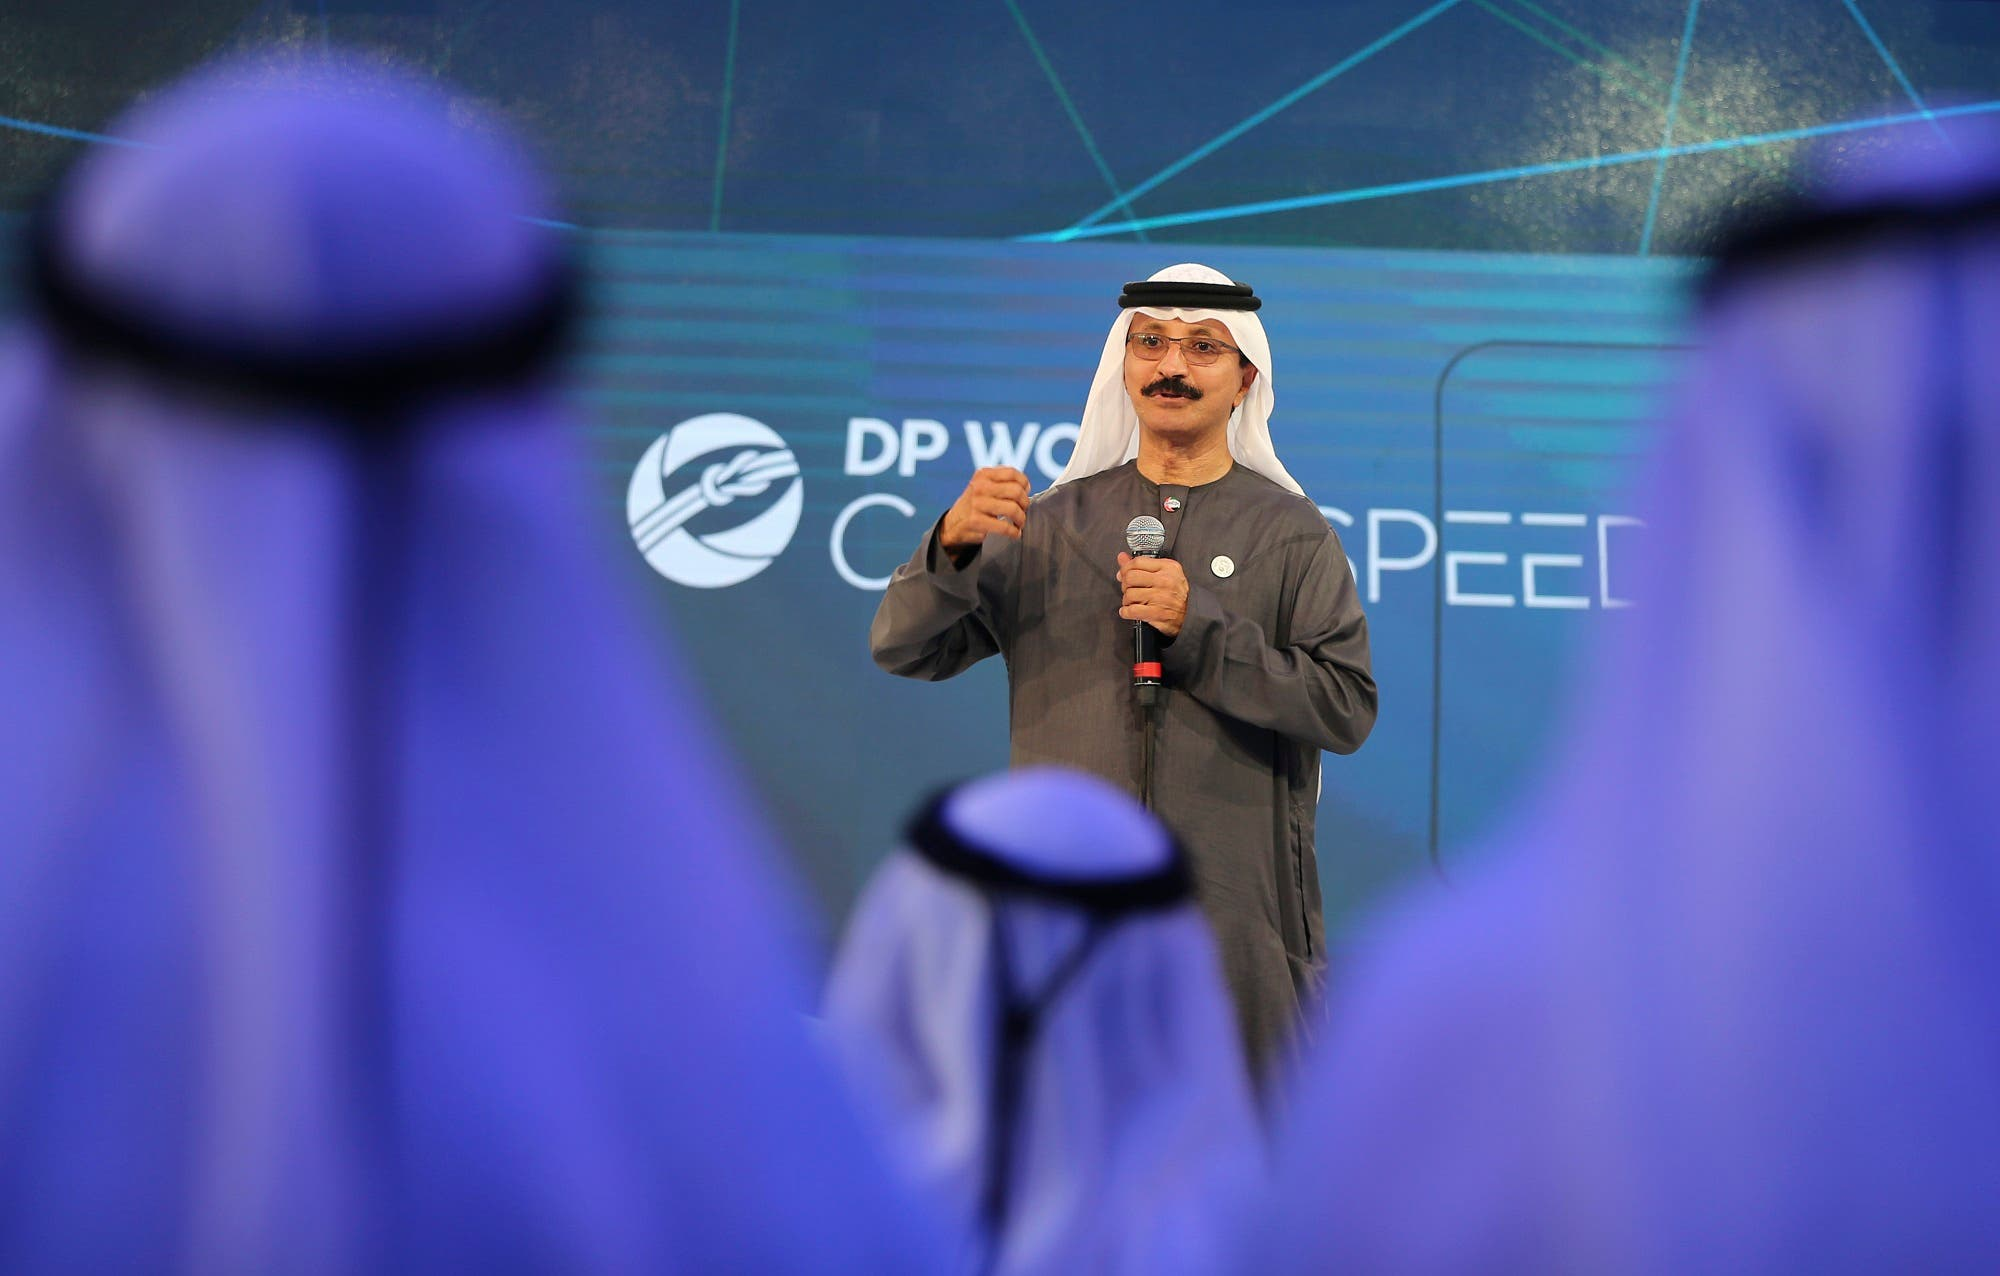 DP World's chairman and CEO Sultan Ahmed bin Sulayem during a presentation in Dubai. (File photo: AP)